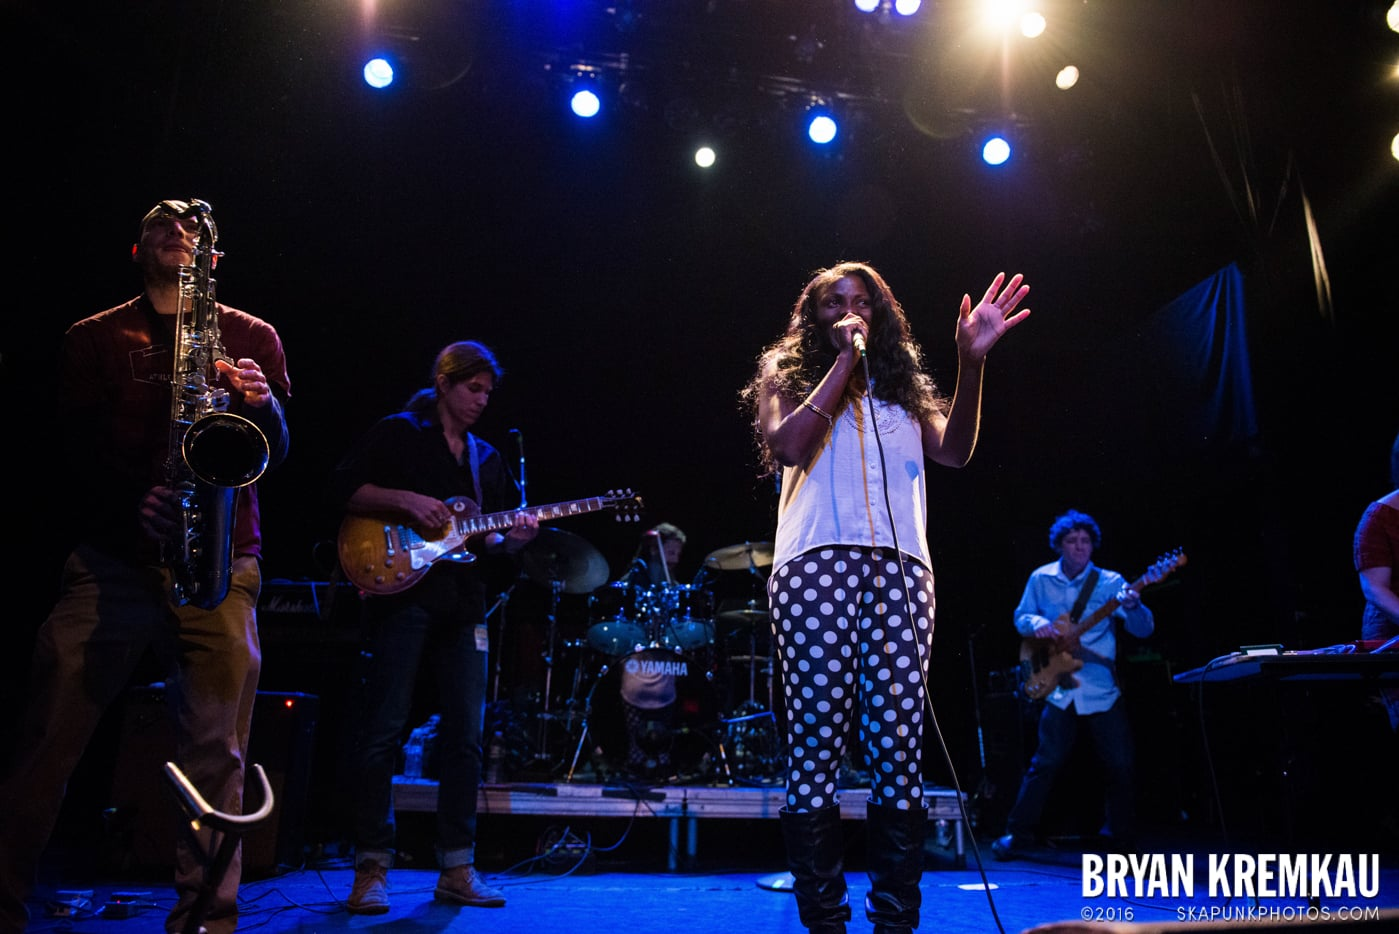 The Big Takeover @ Gramercy Theatre, NYC - 1.19.14 (4)